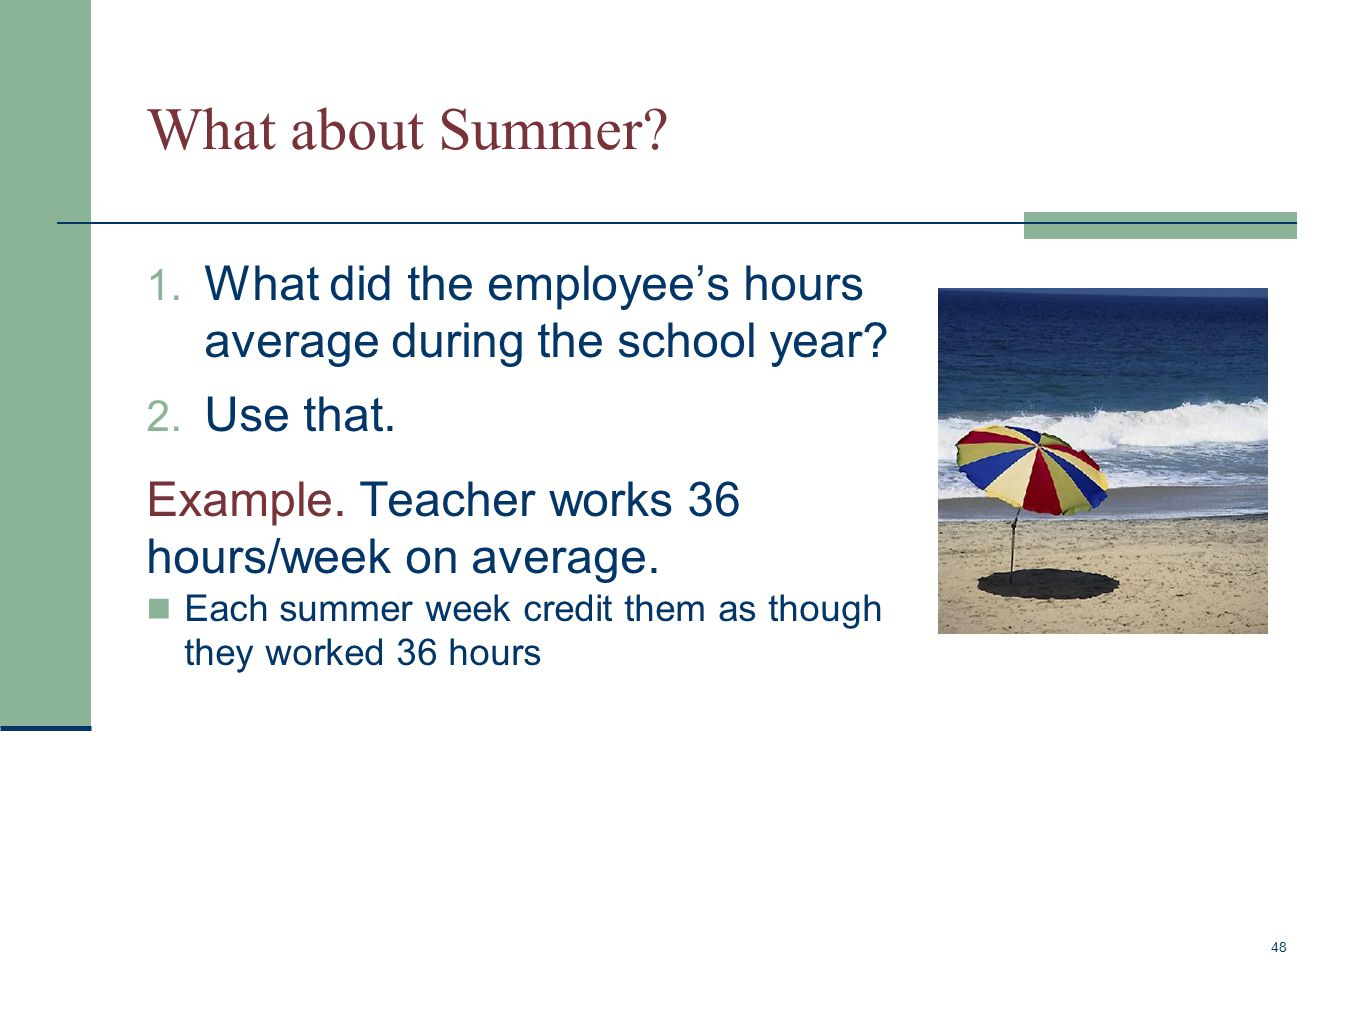 What about Summer? 48 1. What did the employee's hours average during the school year? 2. Use that. Example. Teacher works 36 hours/week on average. E